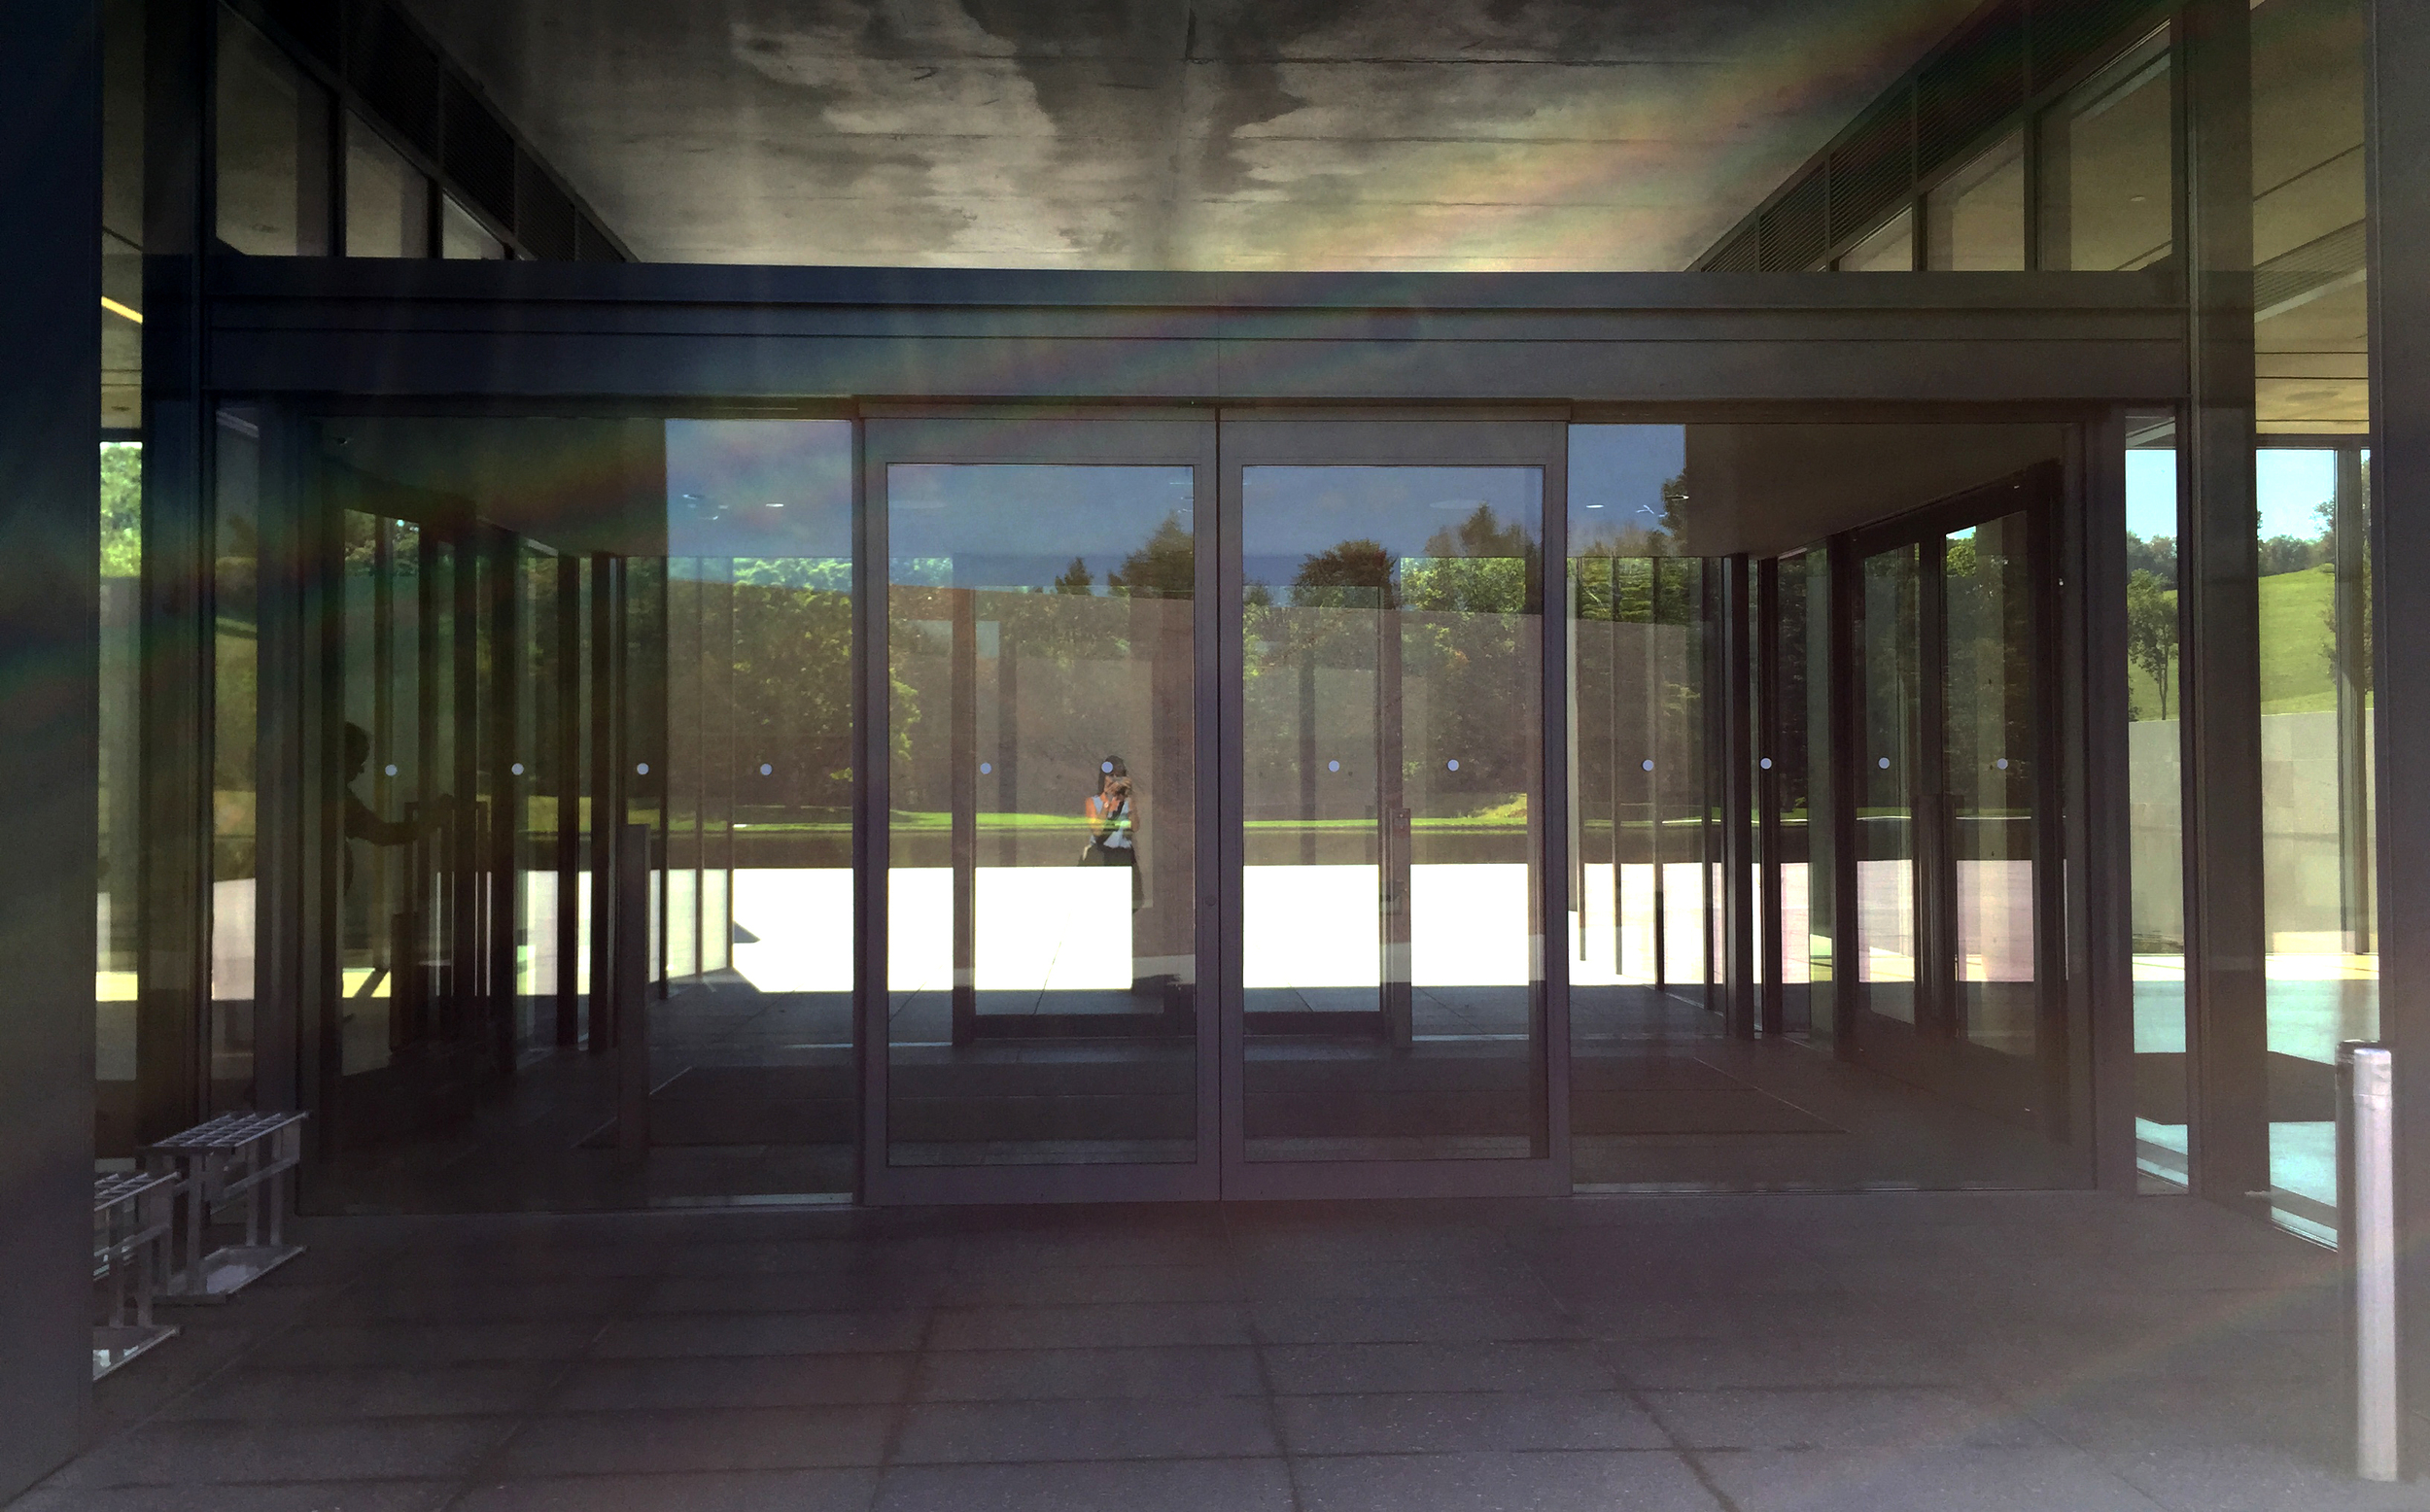 Entrance doors give views to the landscape beyond